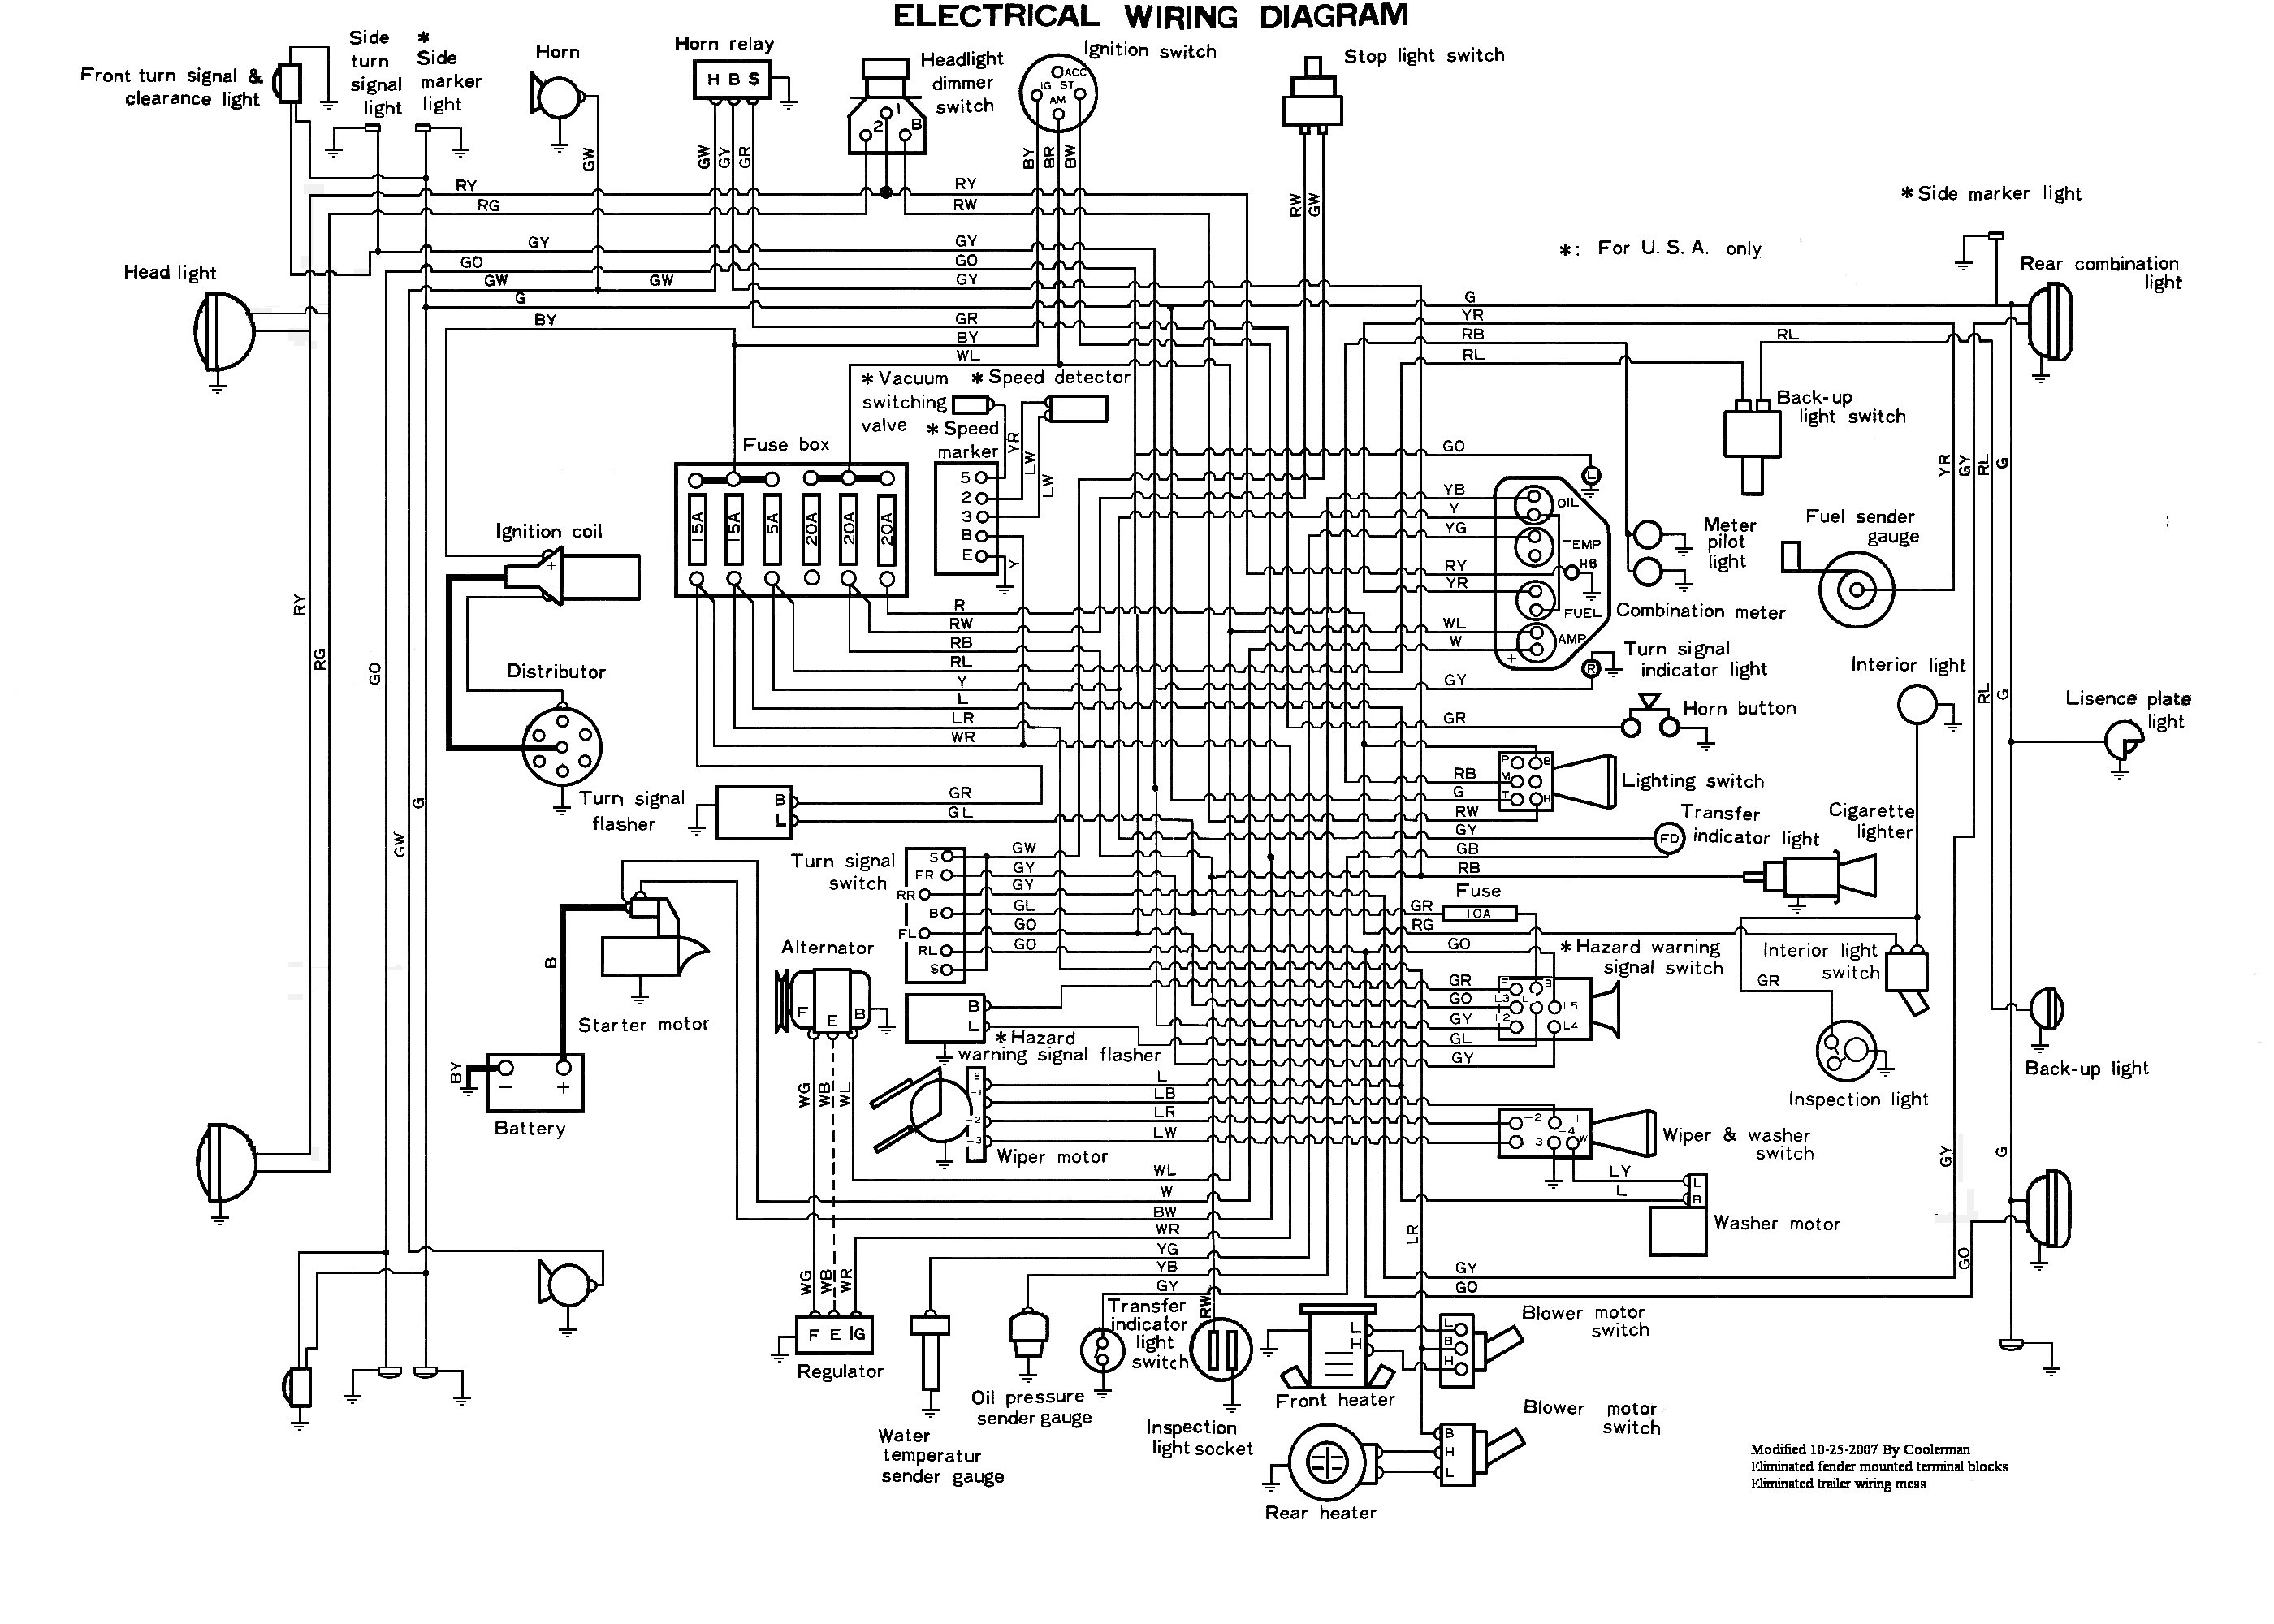 Schematic Electrical The Wiring Diagram Schematics Schematic